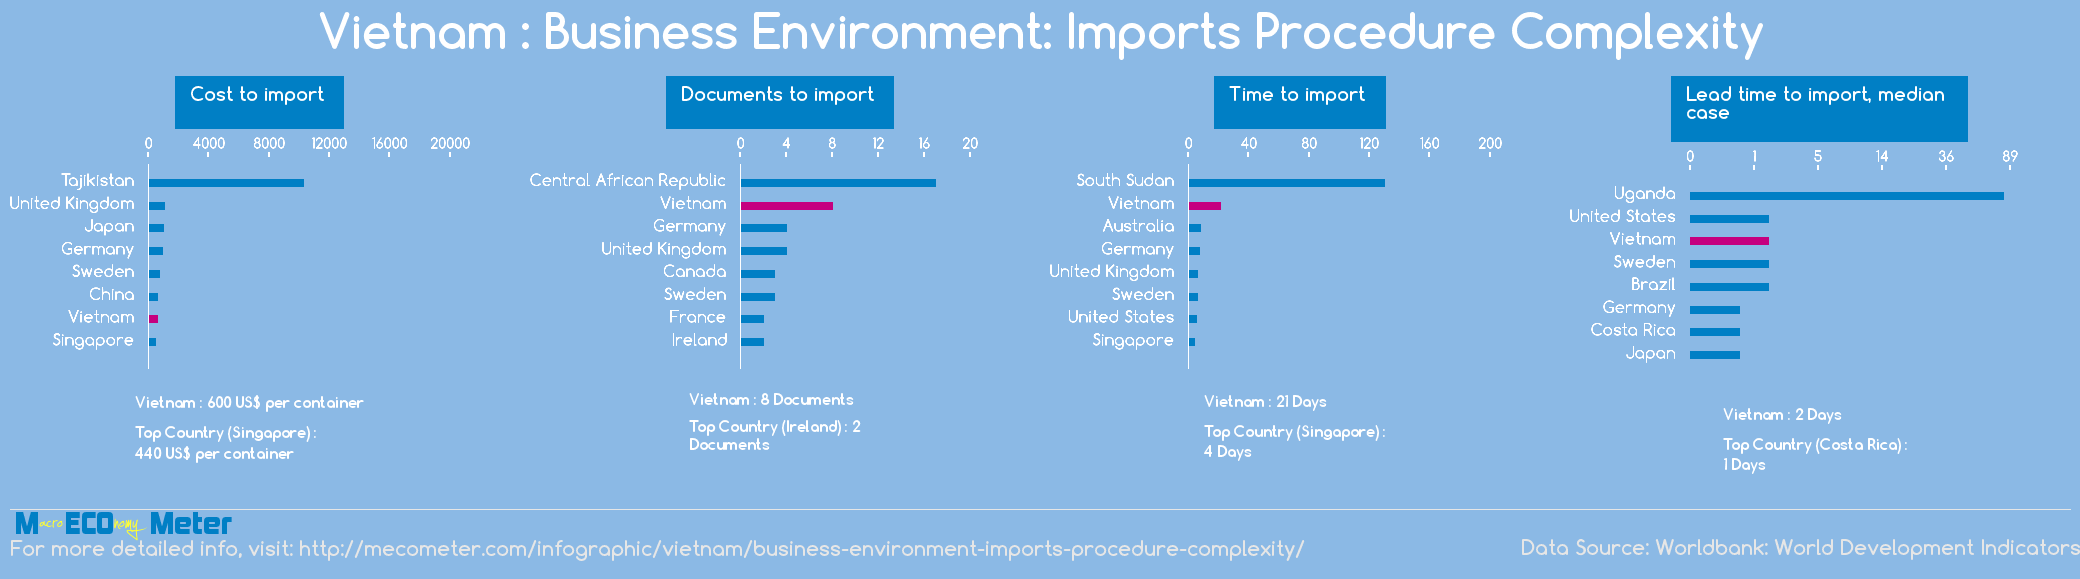 Vietnam : Business Environment: Imports Procedure Complexity